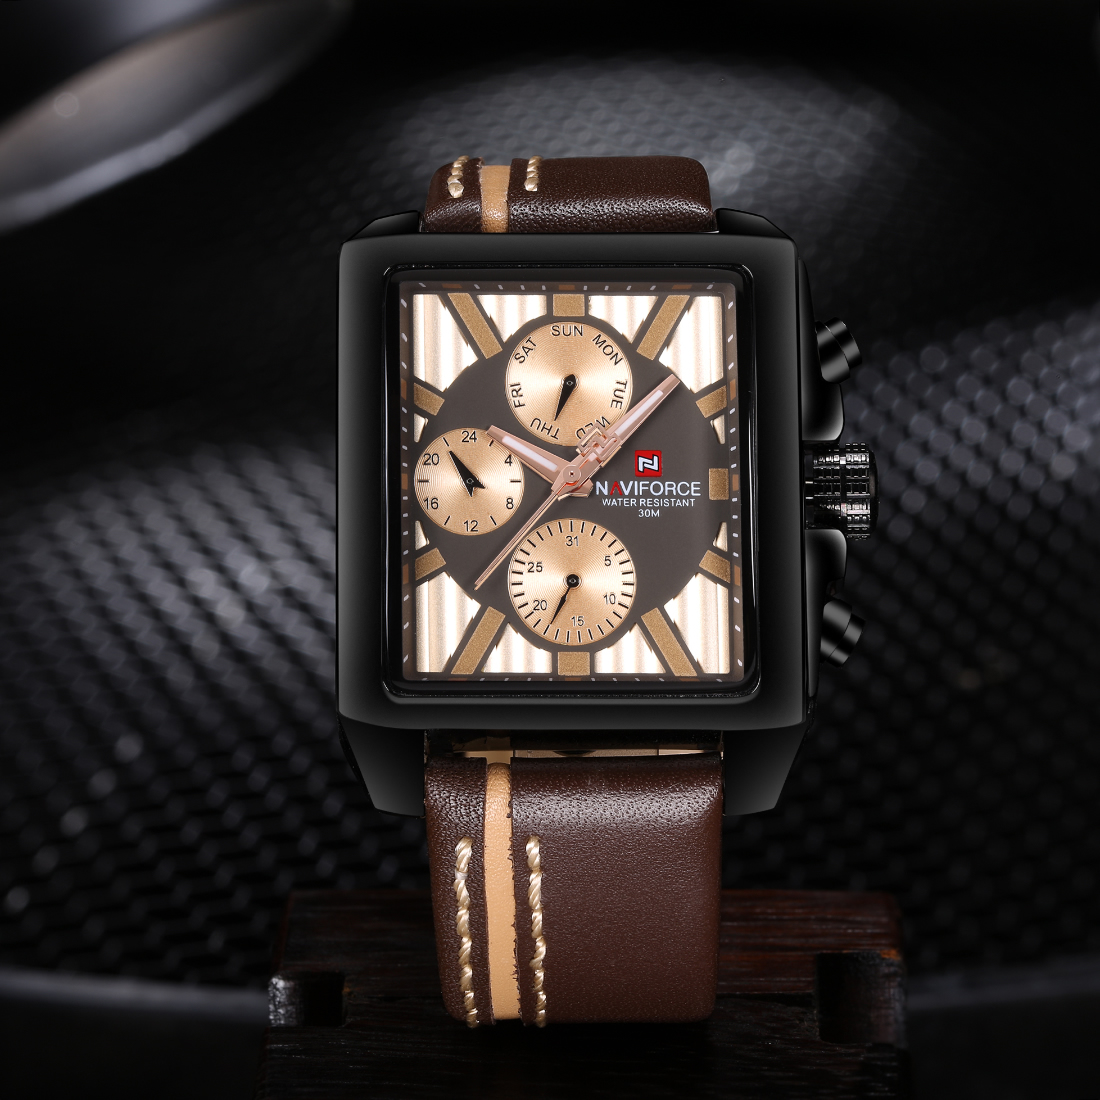 Fashion Quartz Watch Men Waterproof Leather Wrist Watch Man military Clock 2018 Retro Design Top Brand Luxury thin Male Clock ultra thin watch male student korean version of the simple fashion trend fashion watch waterproof leather watch men s watch quar